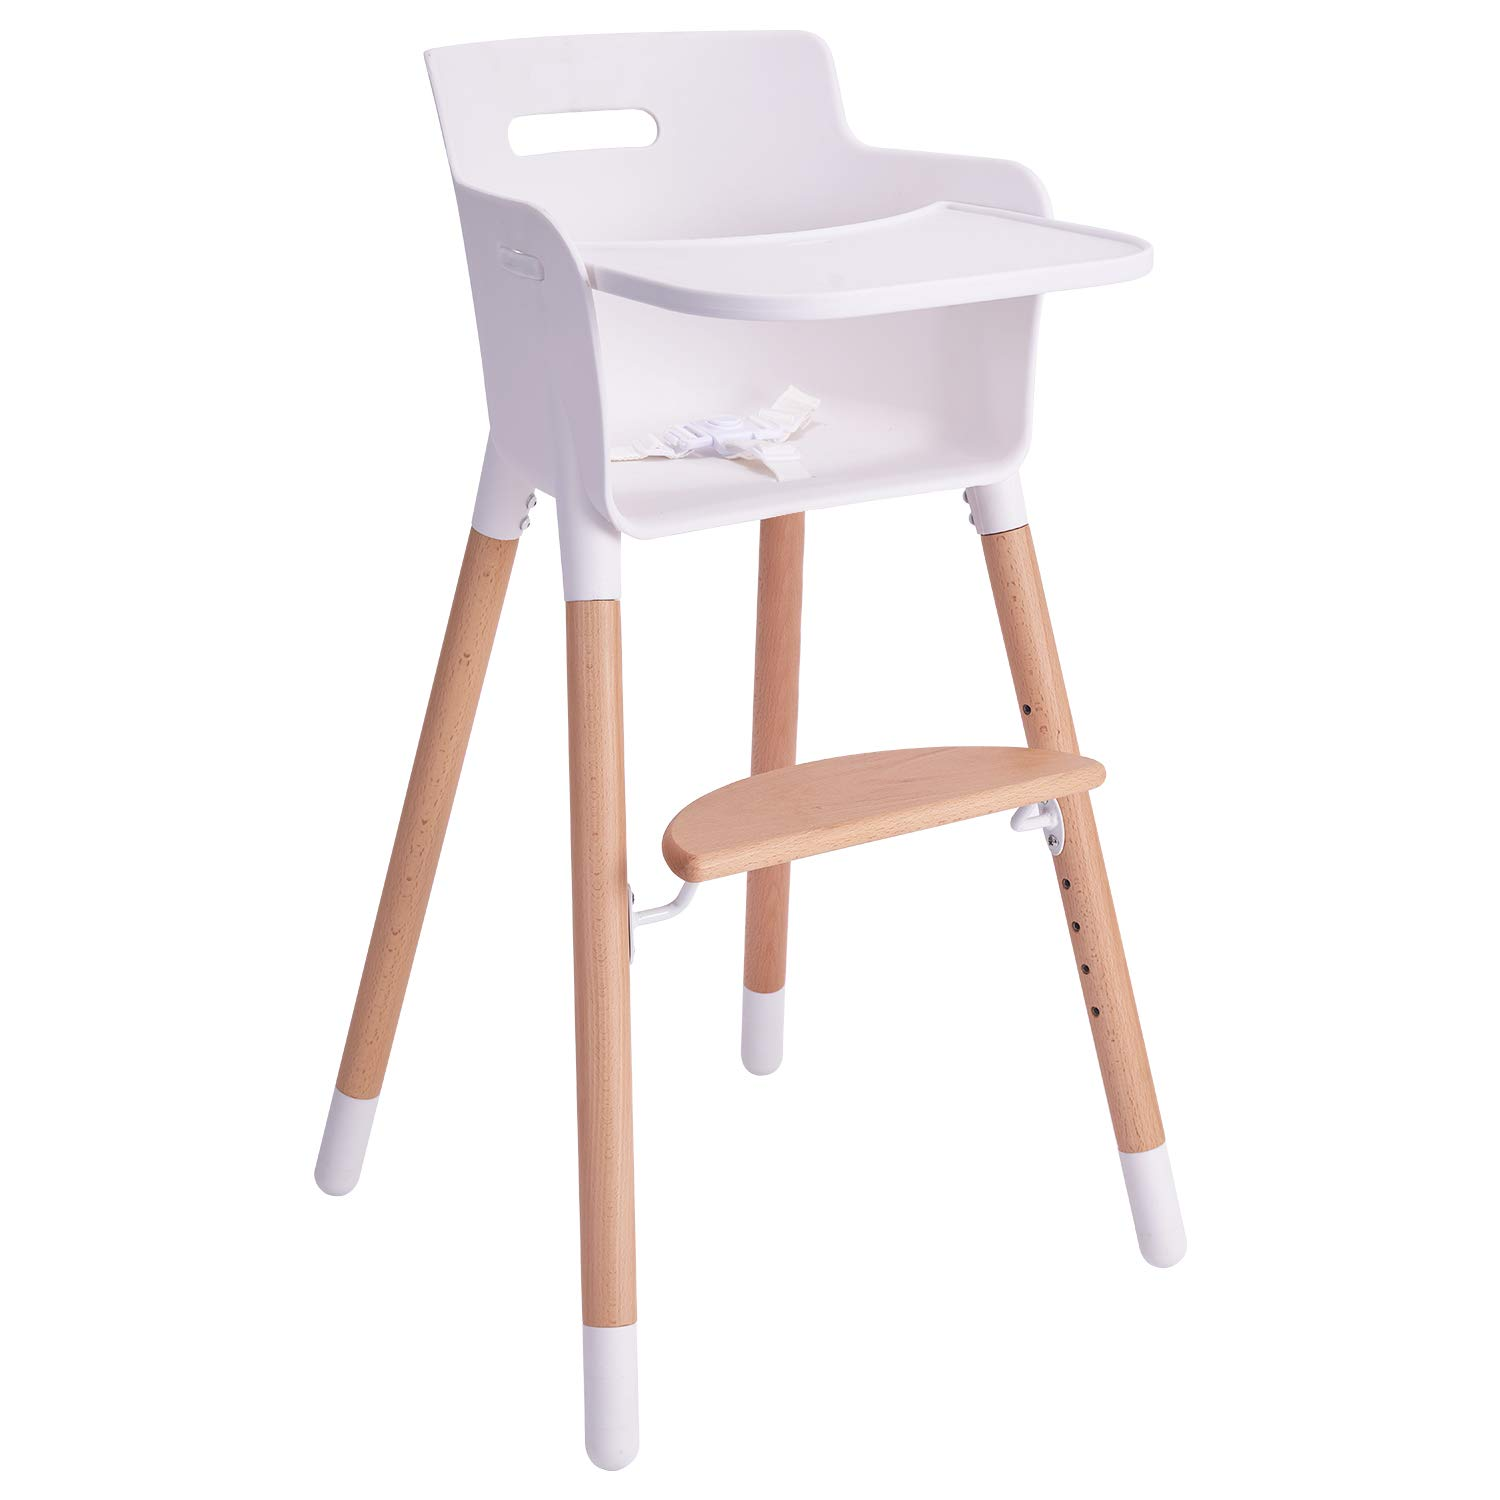 HAN-MM Baby High Chair, Wooden High Chair with Removable Tray and Adjustable Legs for Baby/Infants/Toddlers